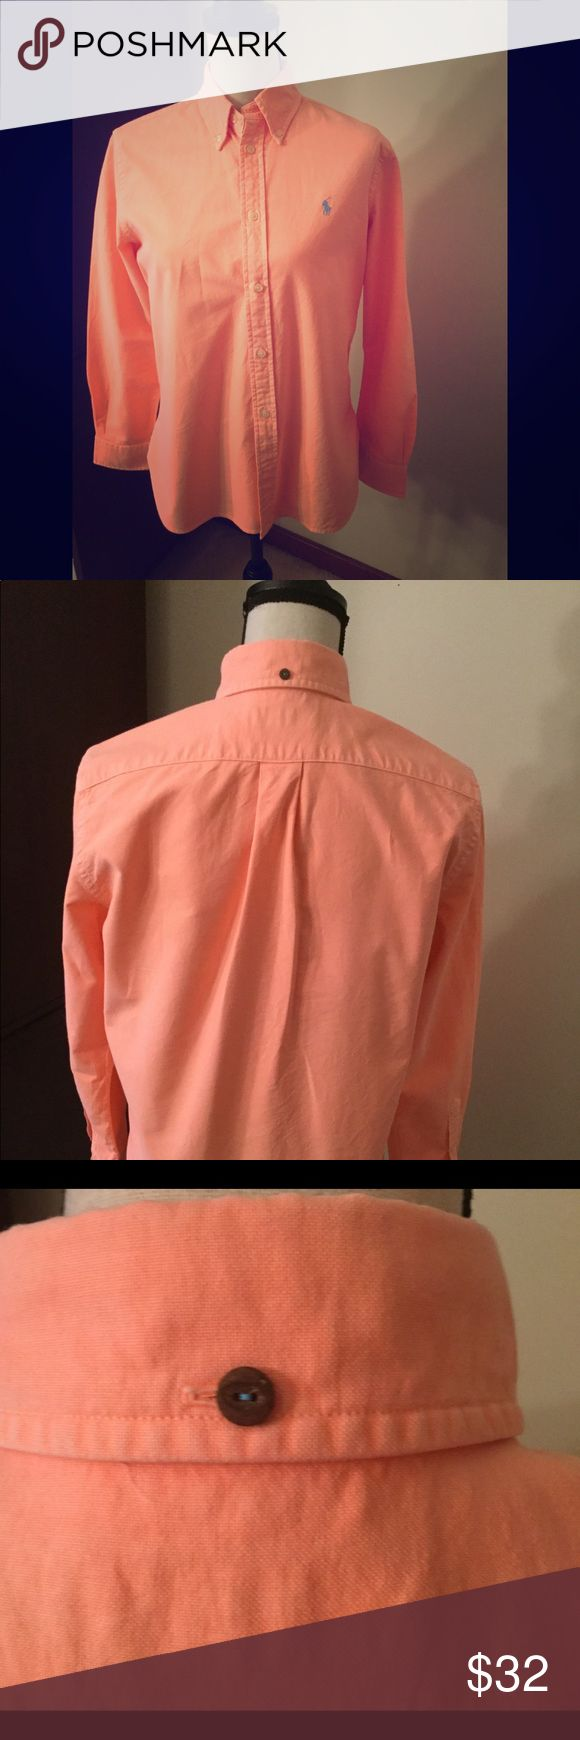 Ralph Lauren Ladies Shirt -size Medium 🎀💞Ralph Lauren Ladies Size Medium Shirt Like New💕gorgeous coral color. Perfect for Spring and Summer and pairs nicely with white slacks🎀💞 Ralph Lauren Tops Blouses